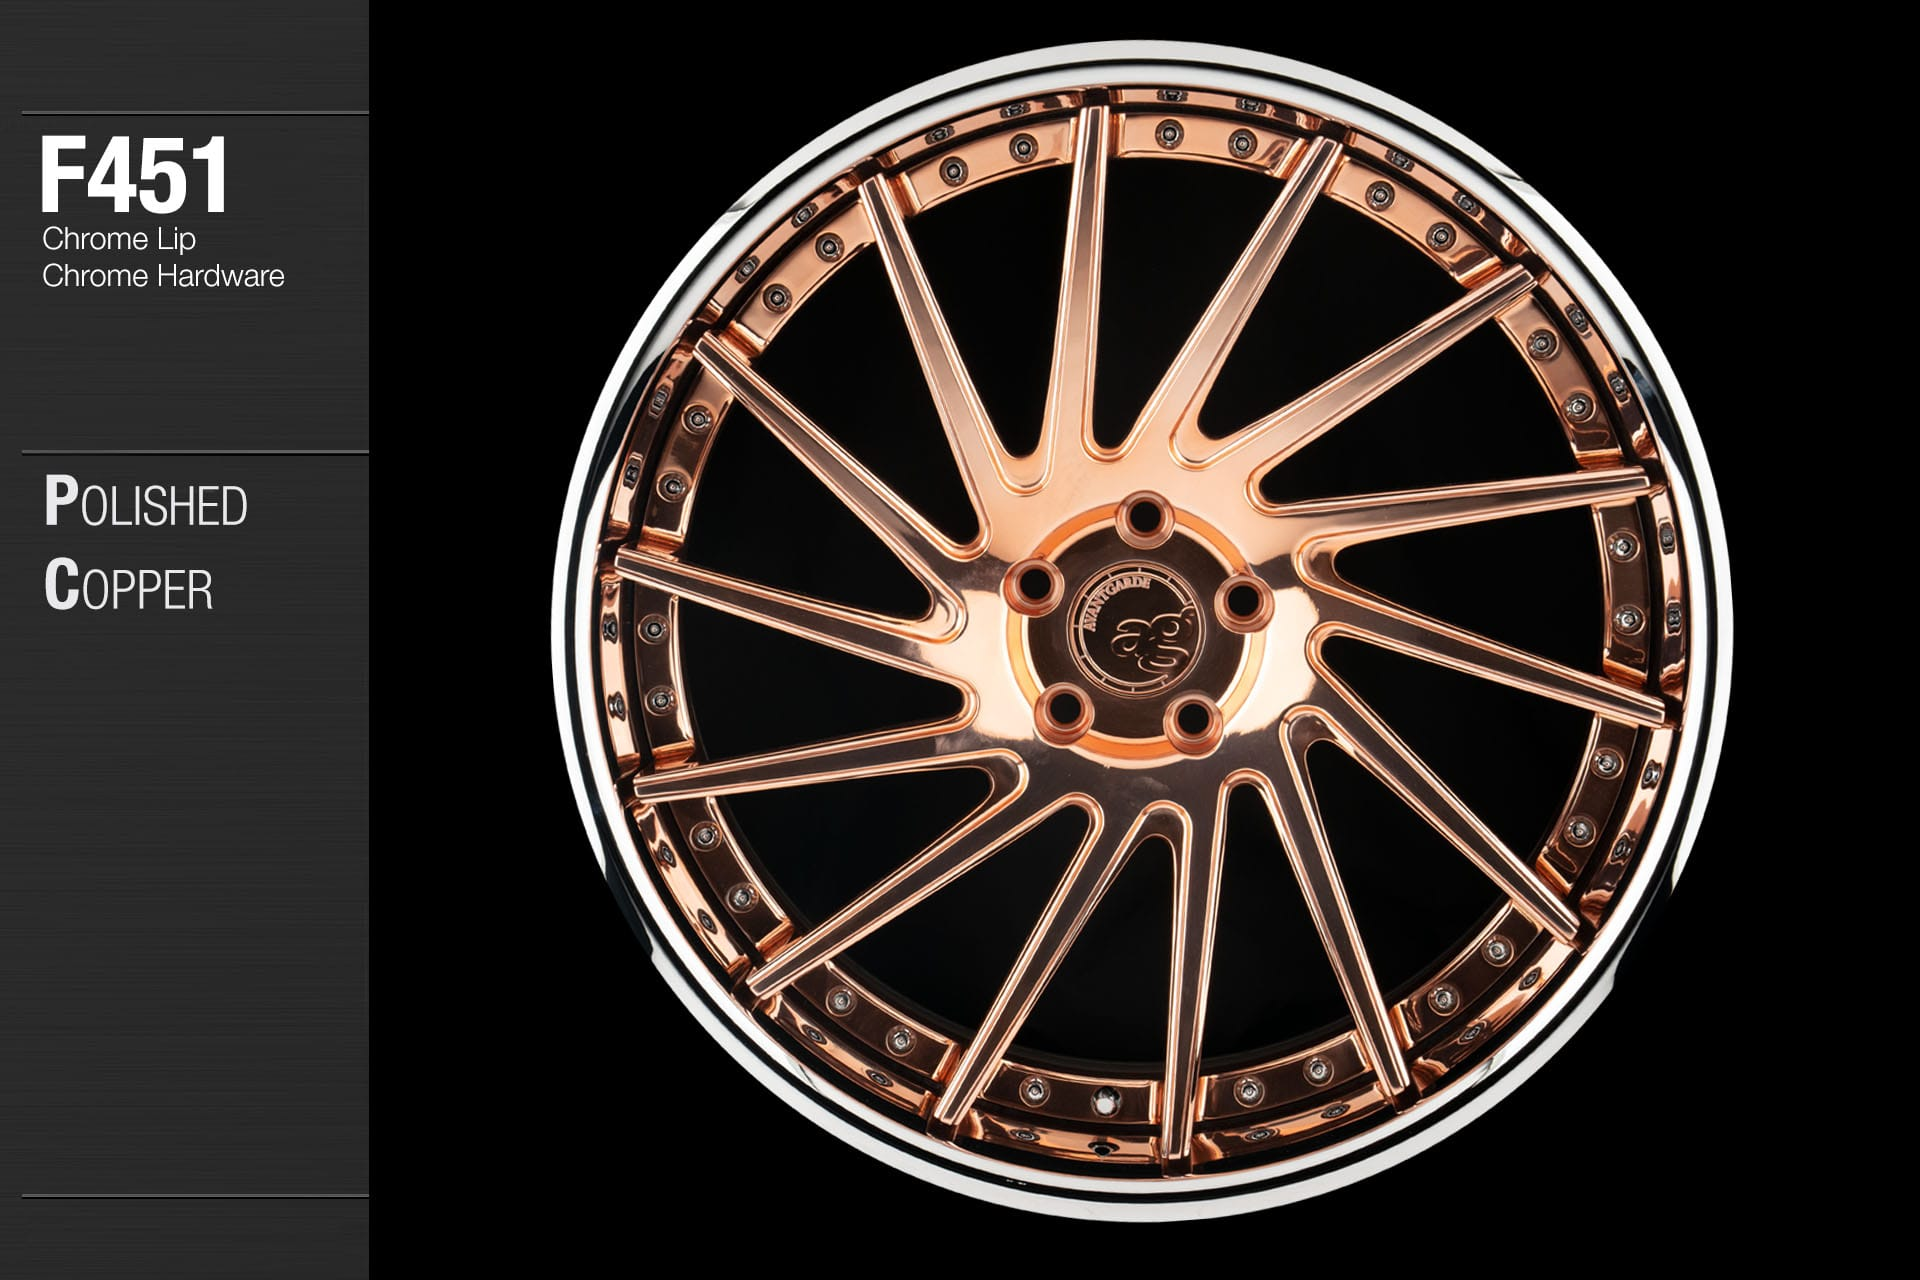 avant-garde-ag-wheels-f451-polished-copper-face-chrome-lip-hardware-1-min